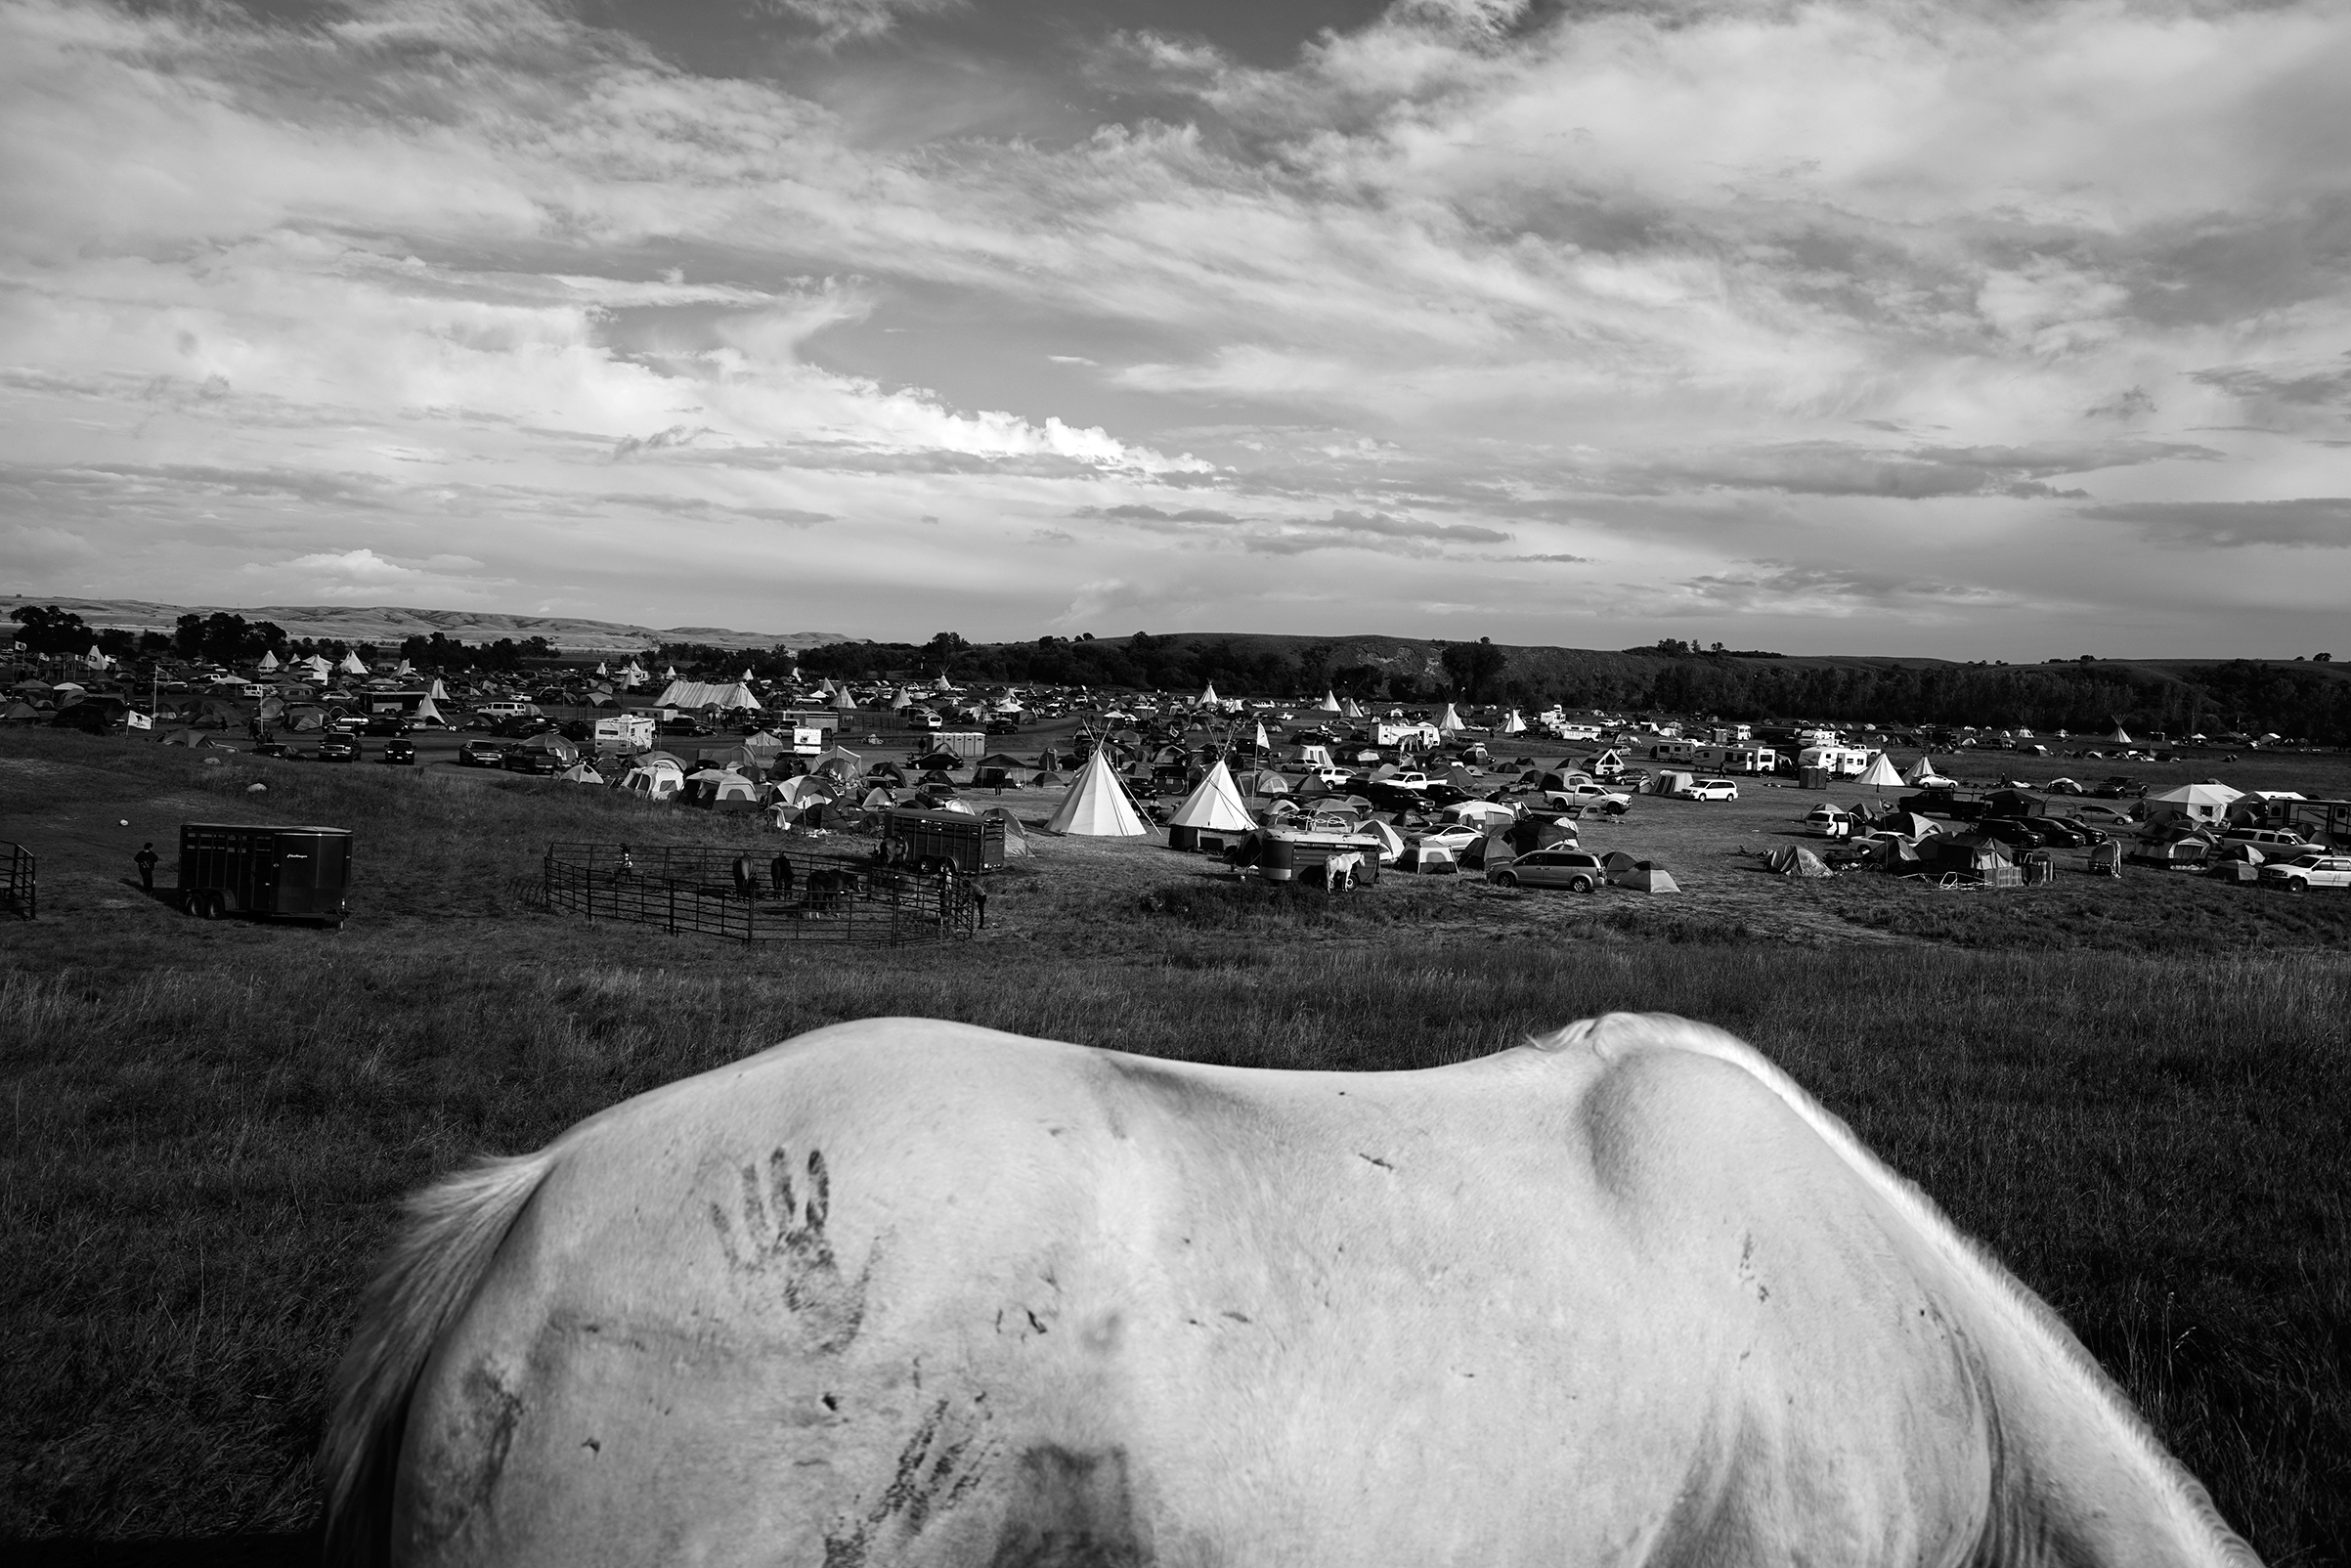 Sioux protest camp. Cannon Ball, North Dakota, September 2016.